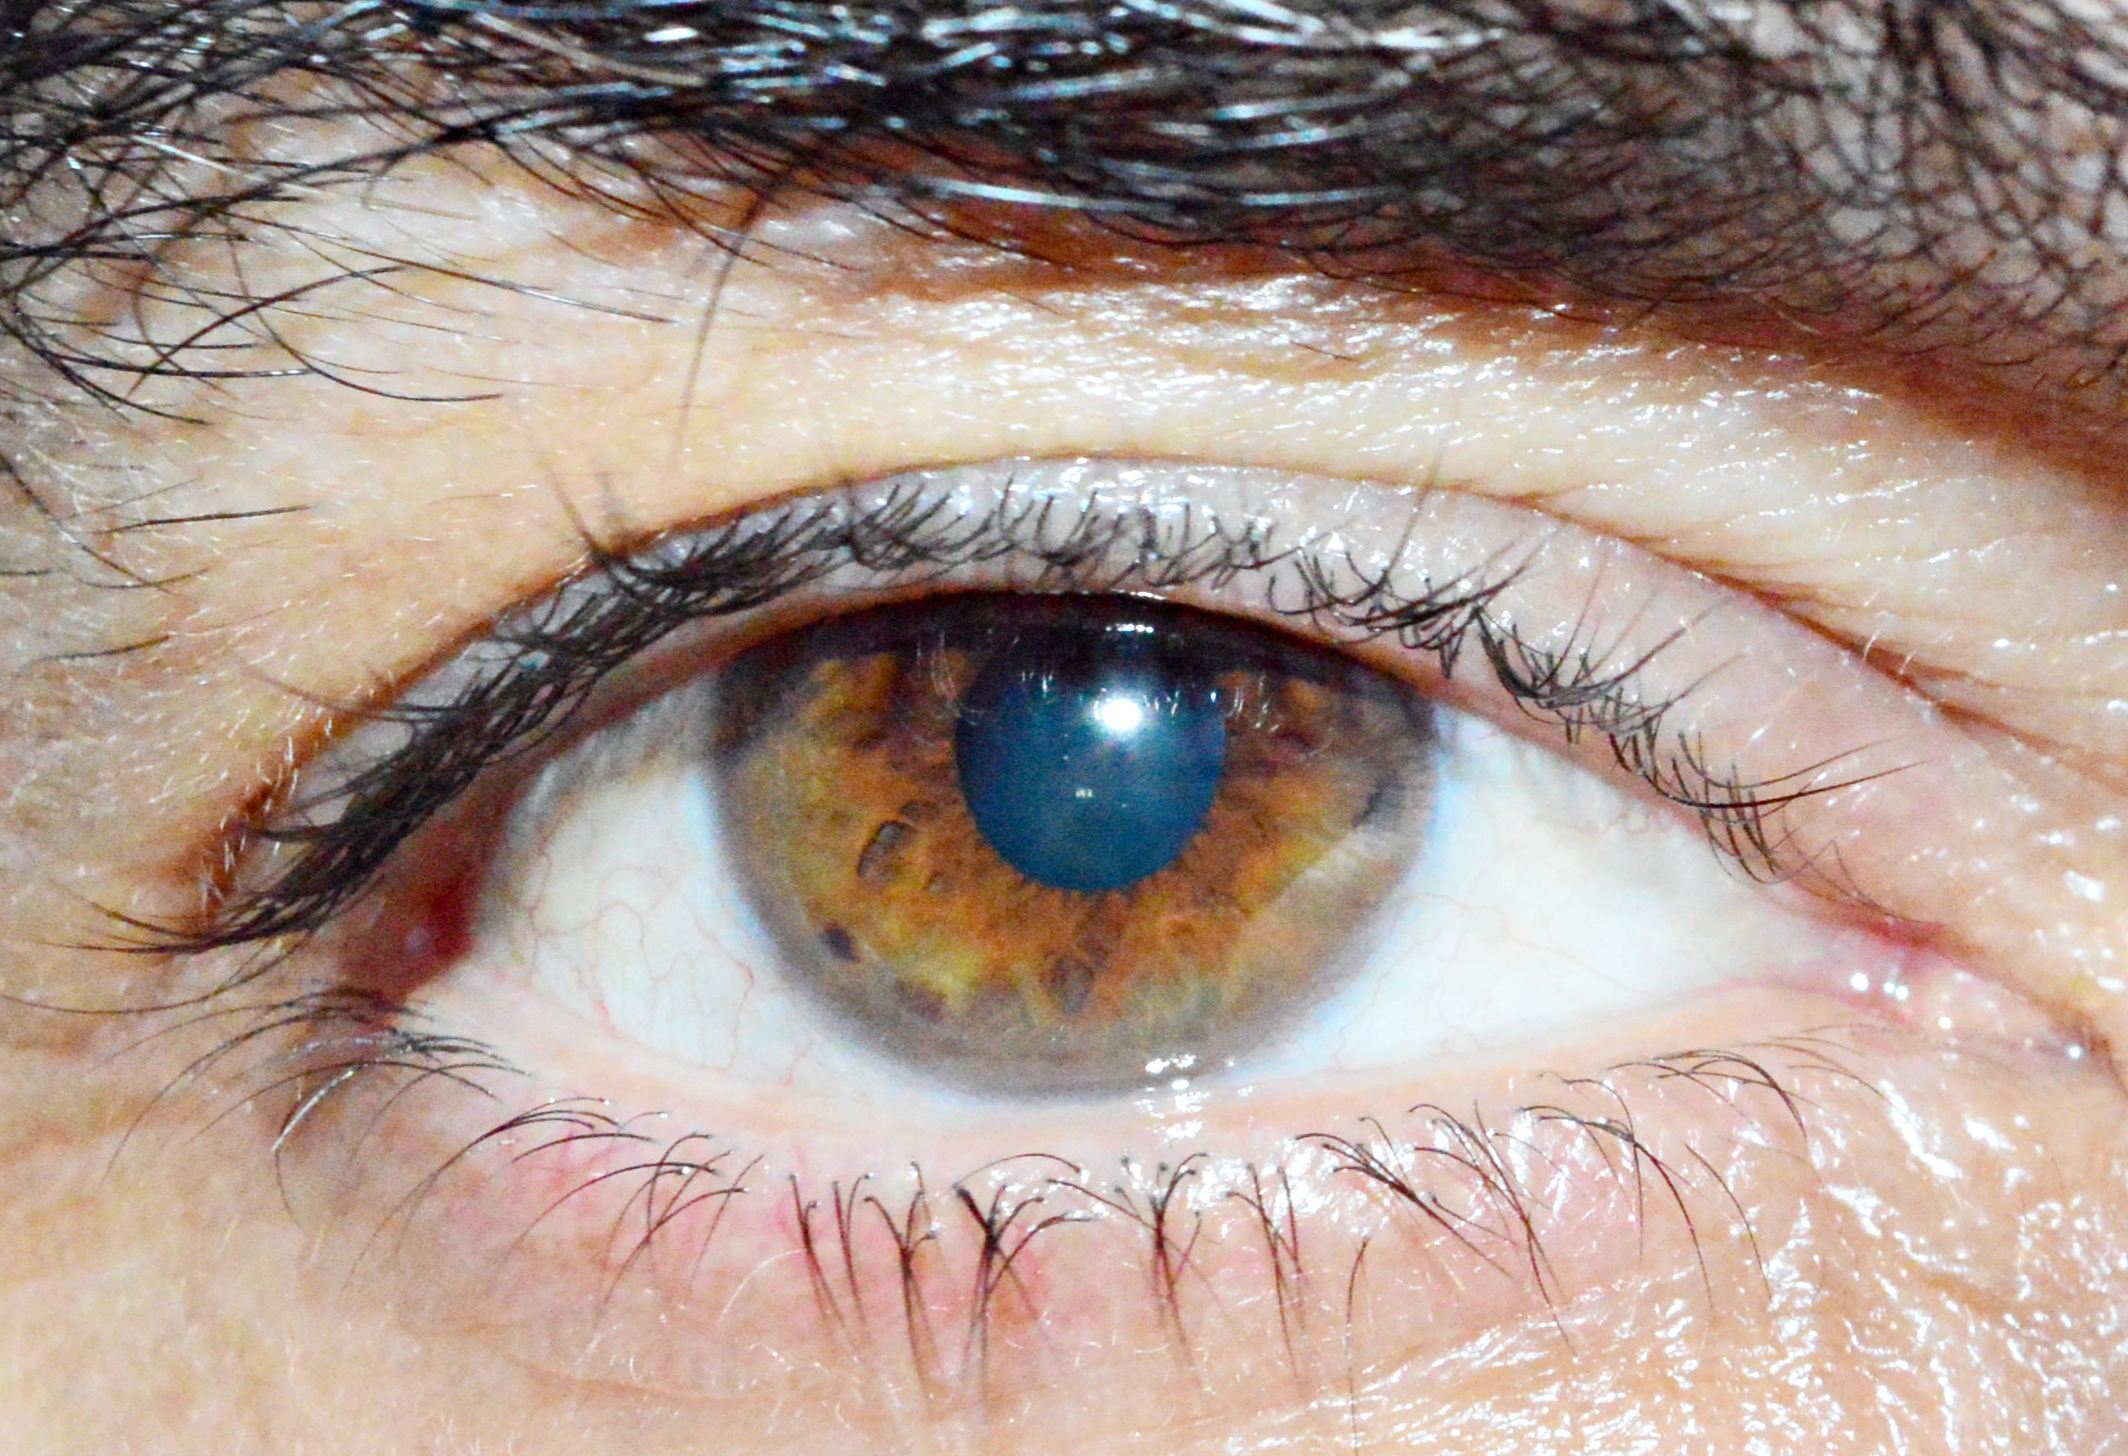 'Poppers' might permanently damage your eyes